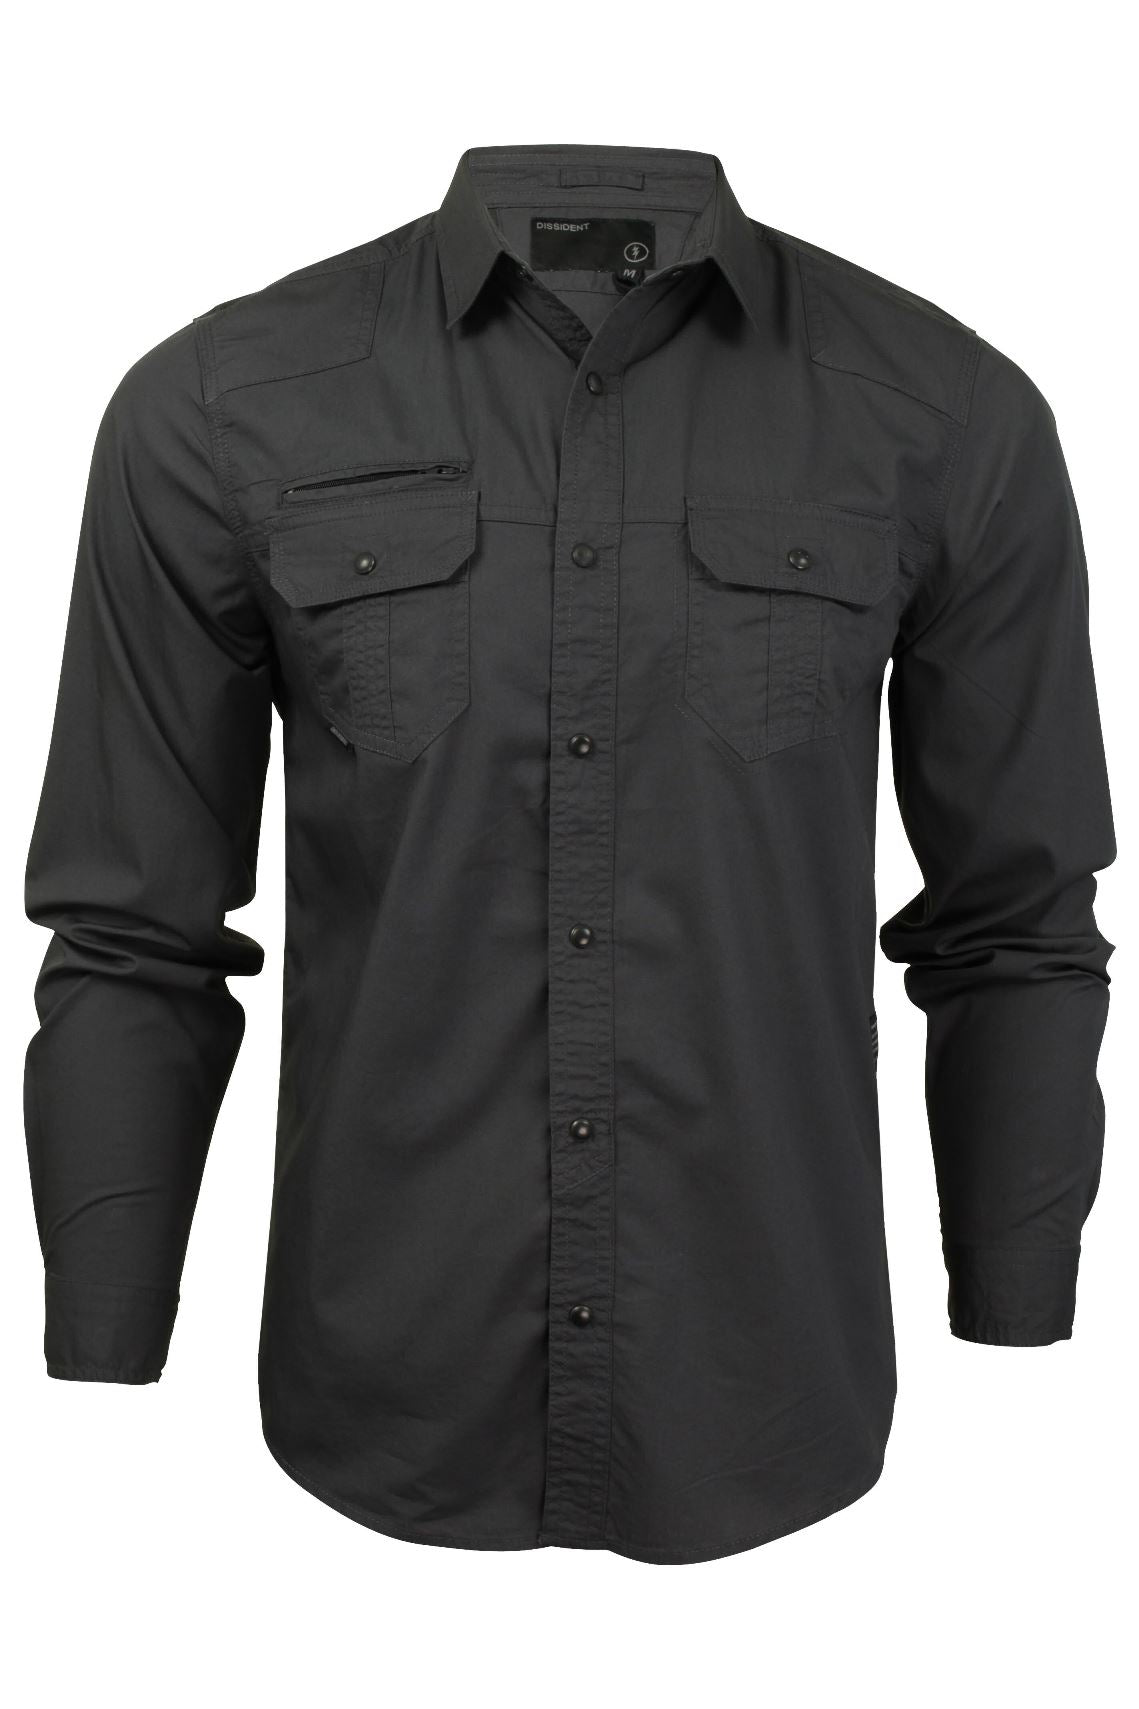 Mens Shirt by Dissident 'Bismarck' Long Sleeved-2